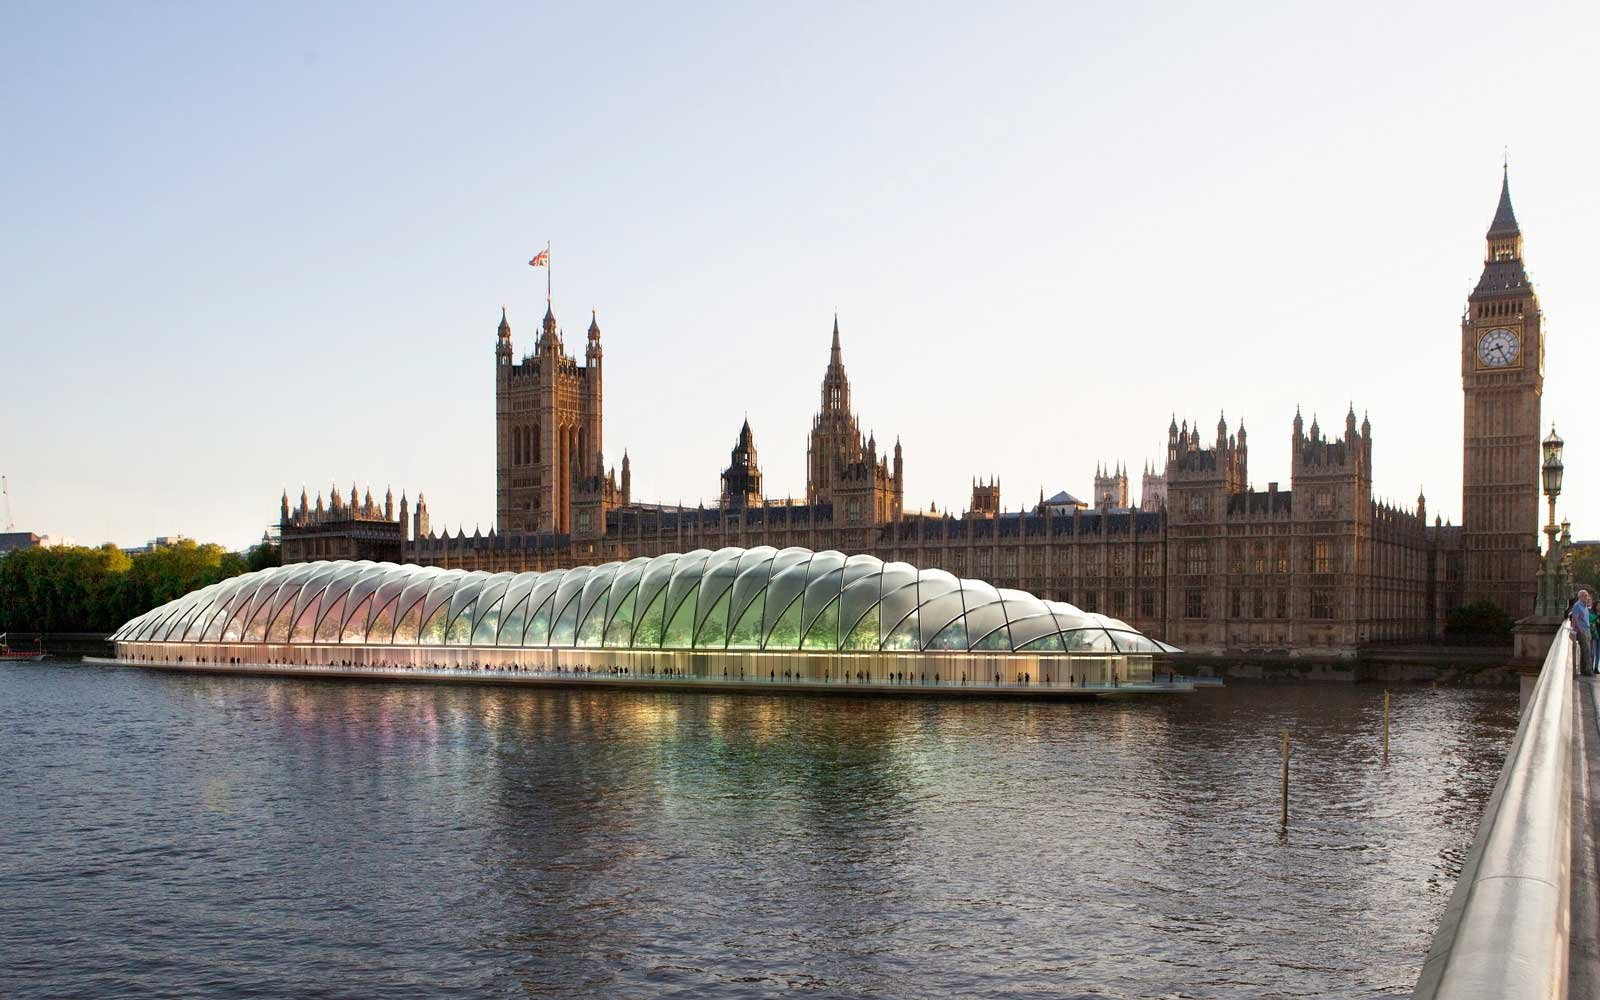 Parliament Proposed River Pod